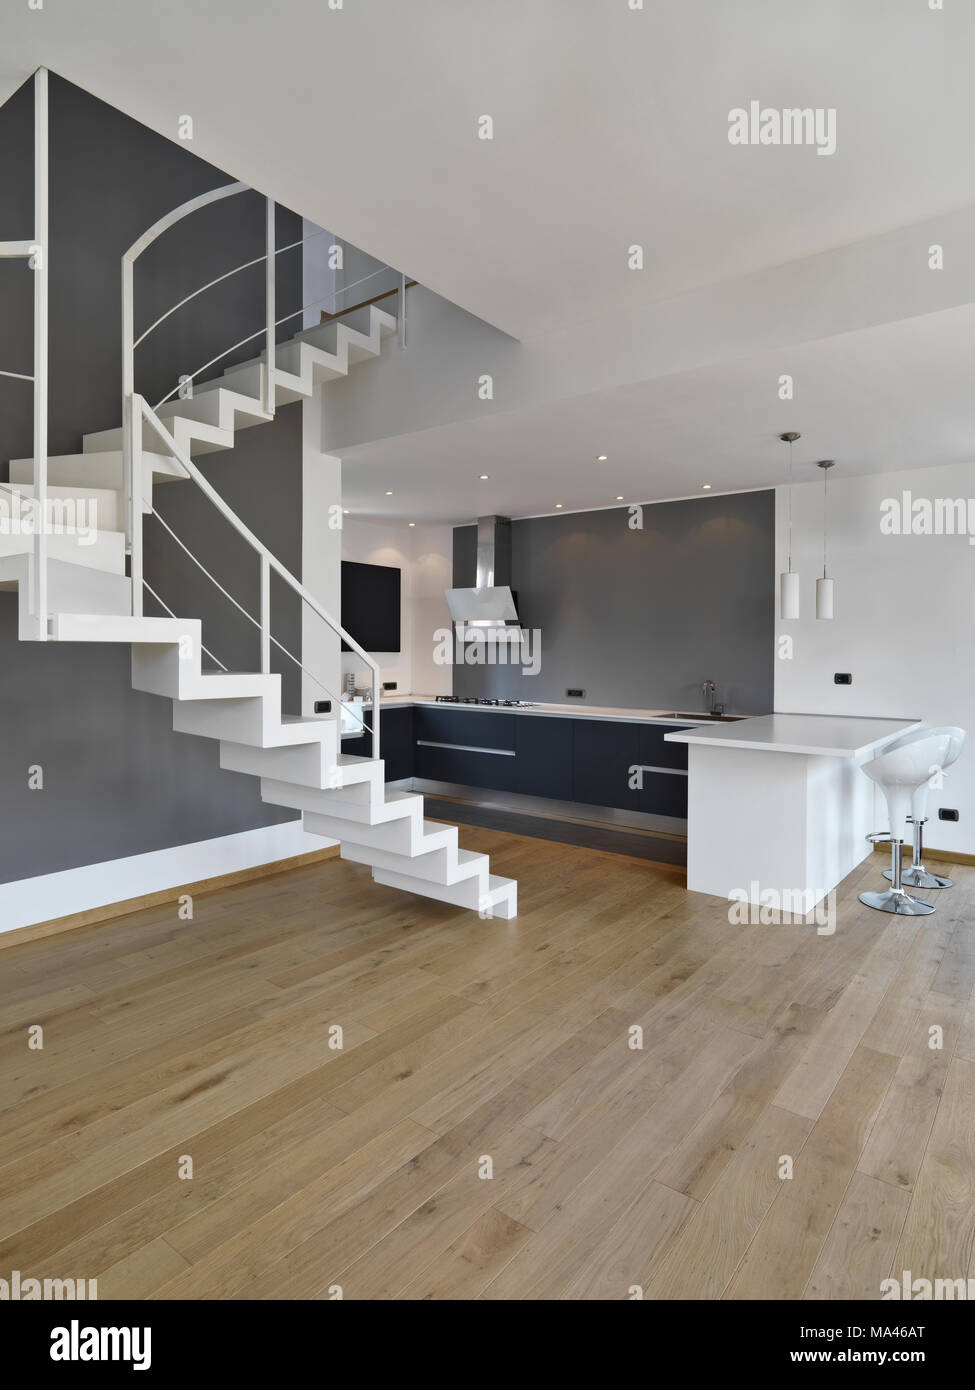 interiors shots of a modern kitchen with staircase and wooden flooting the walls are white - Stock Image